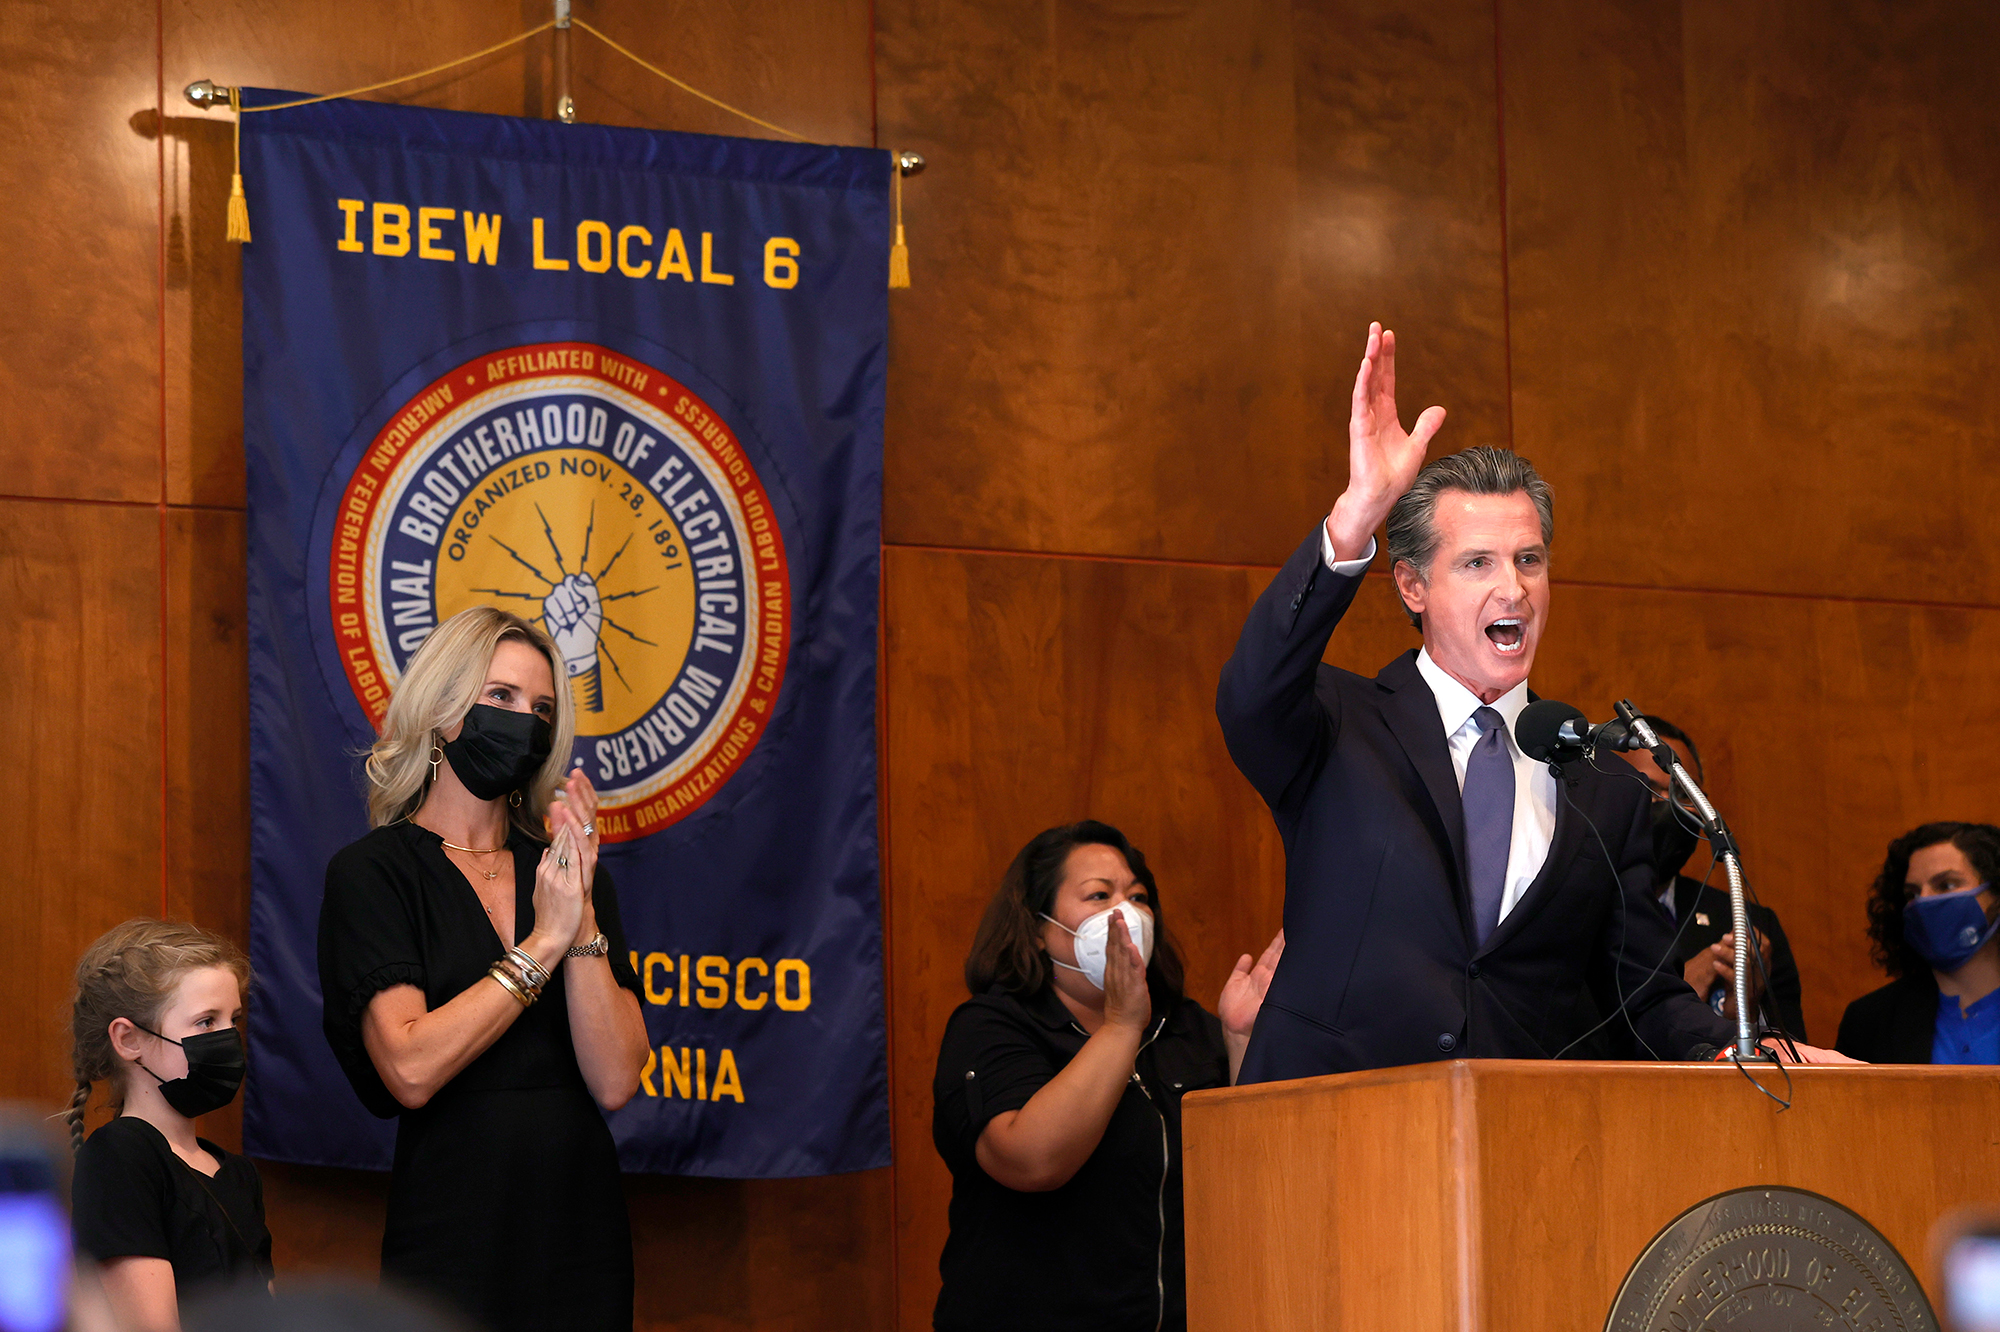 California Gov. Gavin Newsom speaks to union workers and volunteers on election day at the IBEW Local 6 union hall on Tuesday in San Francisco.